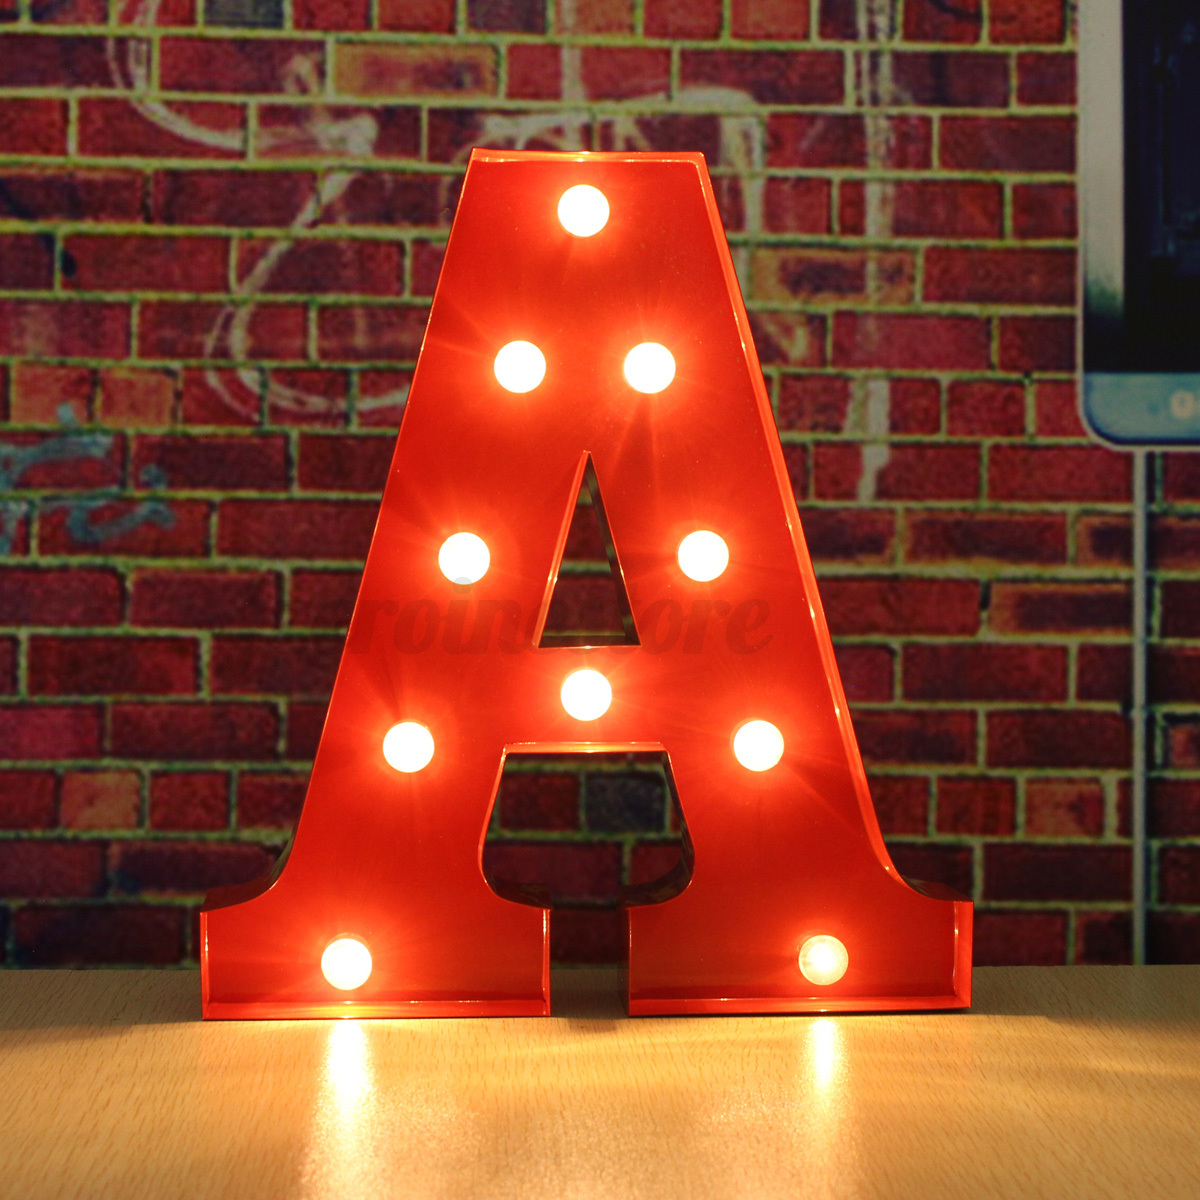 light up letters sign 12 quot led marquee letter alphabet lights a to m circus 17487 | 00D799859A8D9096913D9A8C47F62756D616A4439C469BCF5399D2C226569D9BD2CC739B8523D2C8CECA93D2935BCE93CF5363C90366BE23CB16F52353